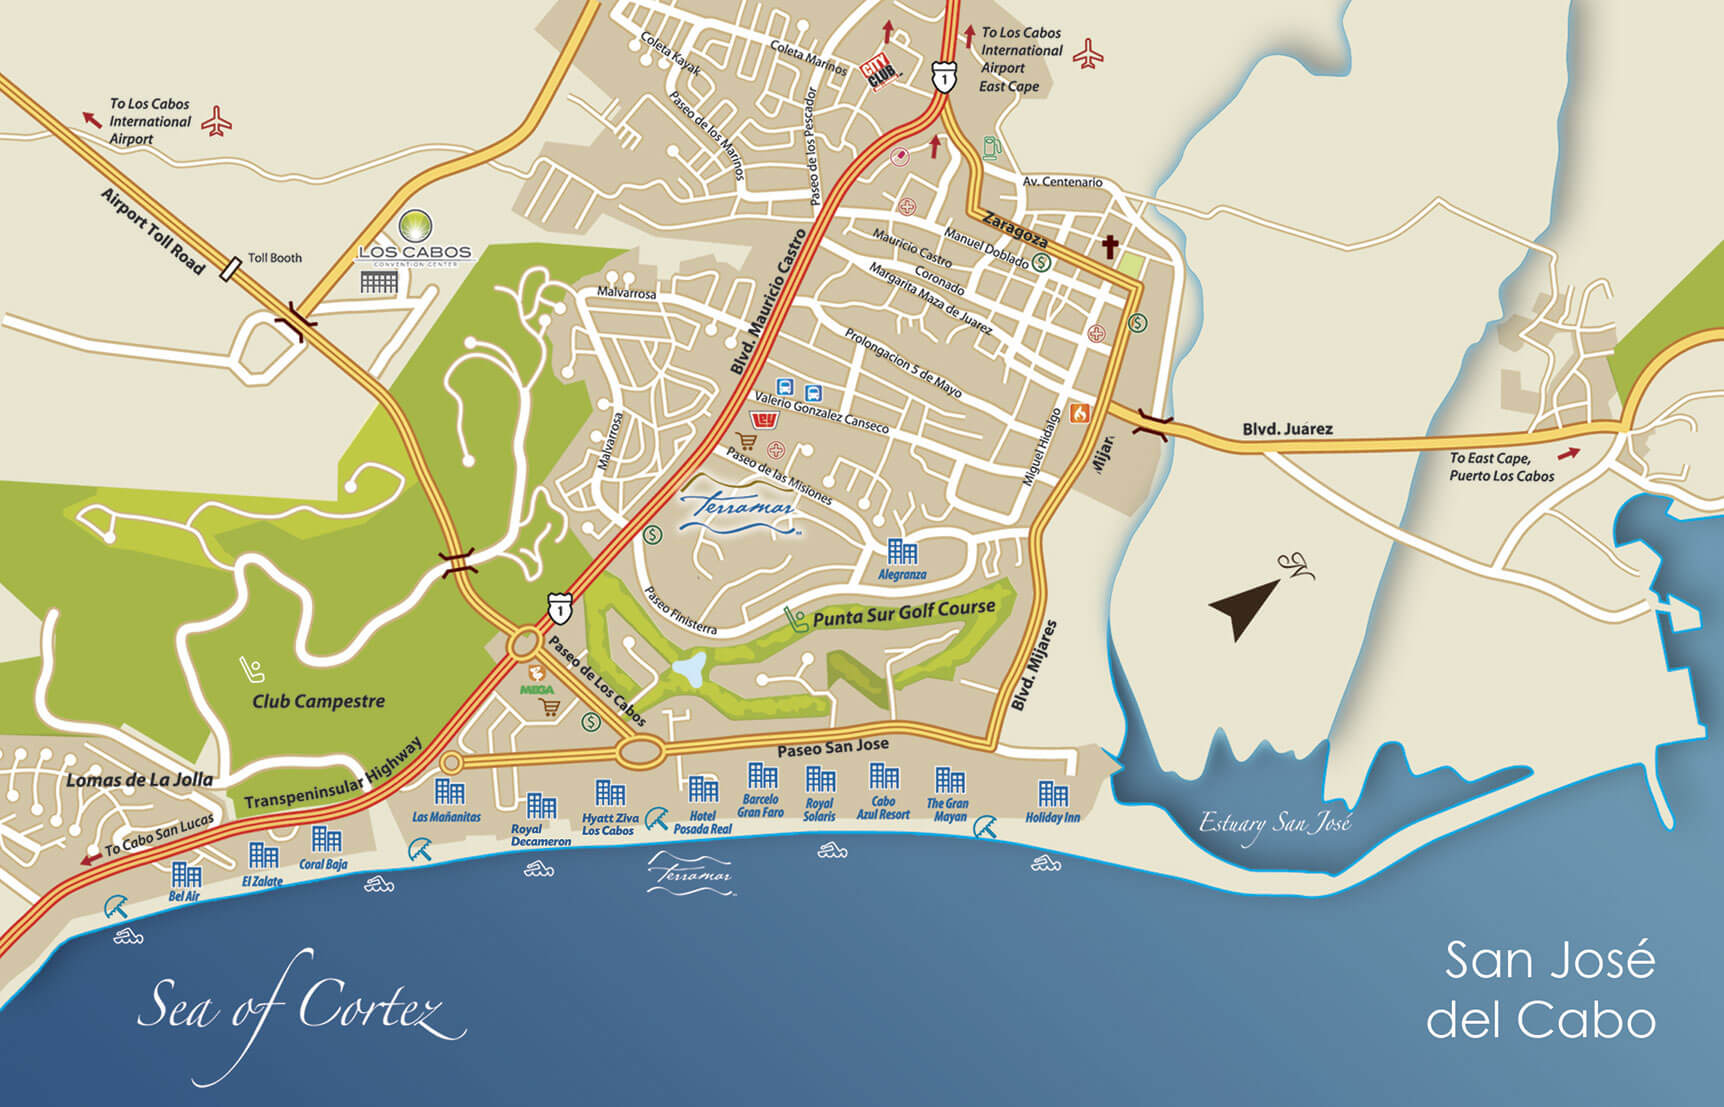 Map of San Jose del Cabo